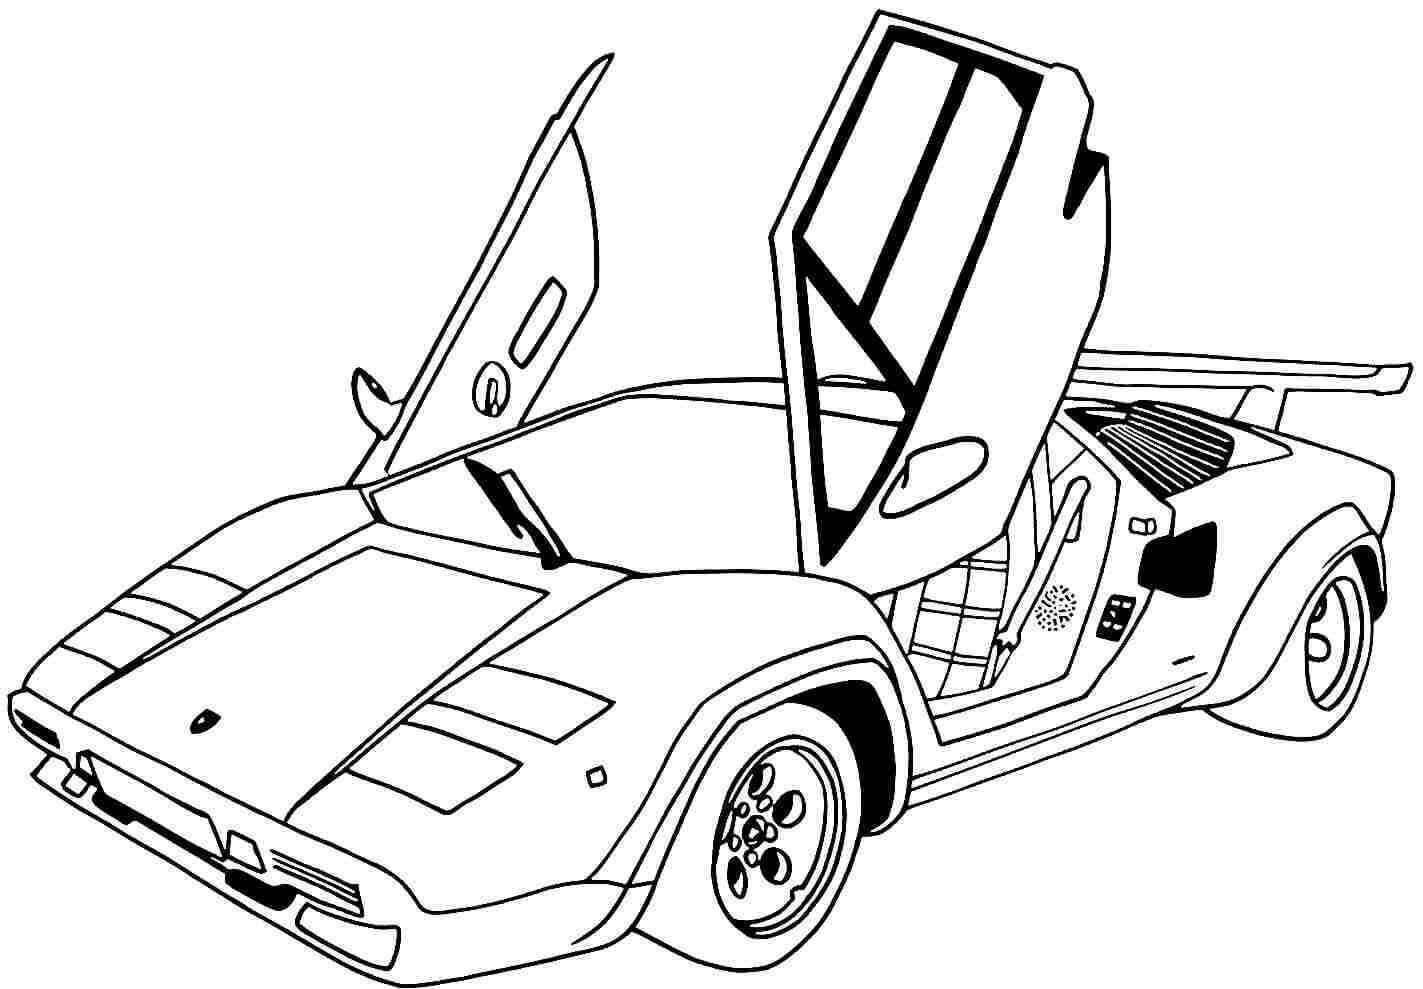 coloring cars for toddlers free printable car coloring pages for kids art hearty cars coloring toddlers for